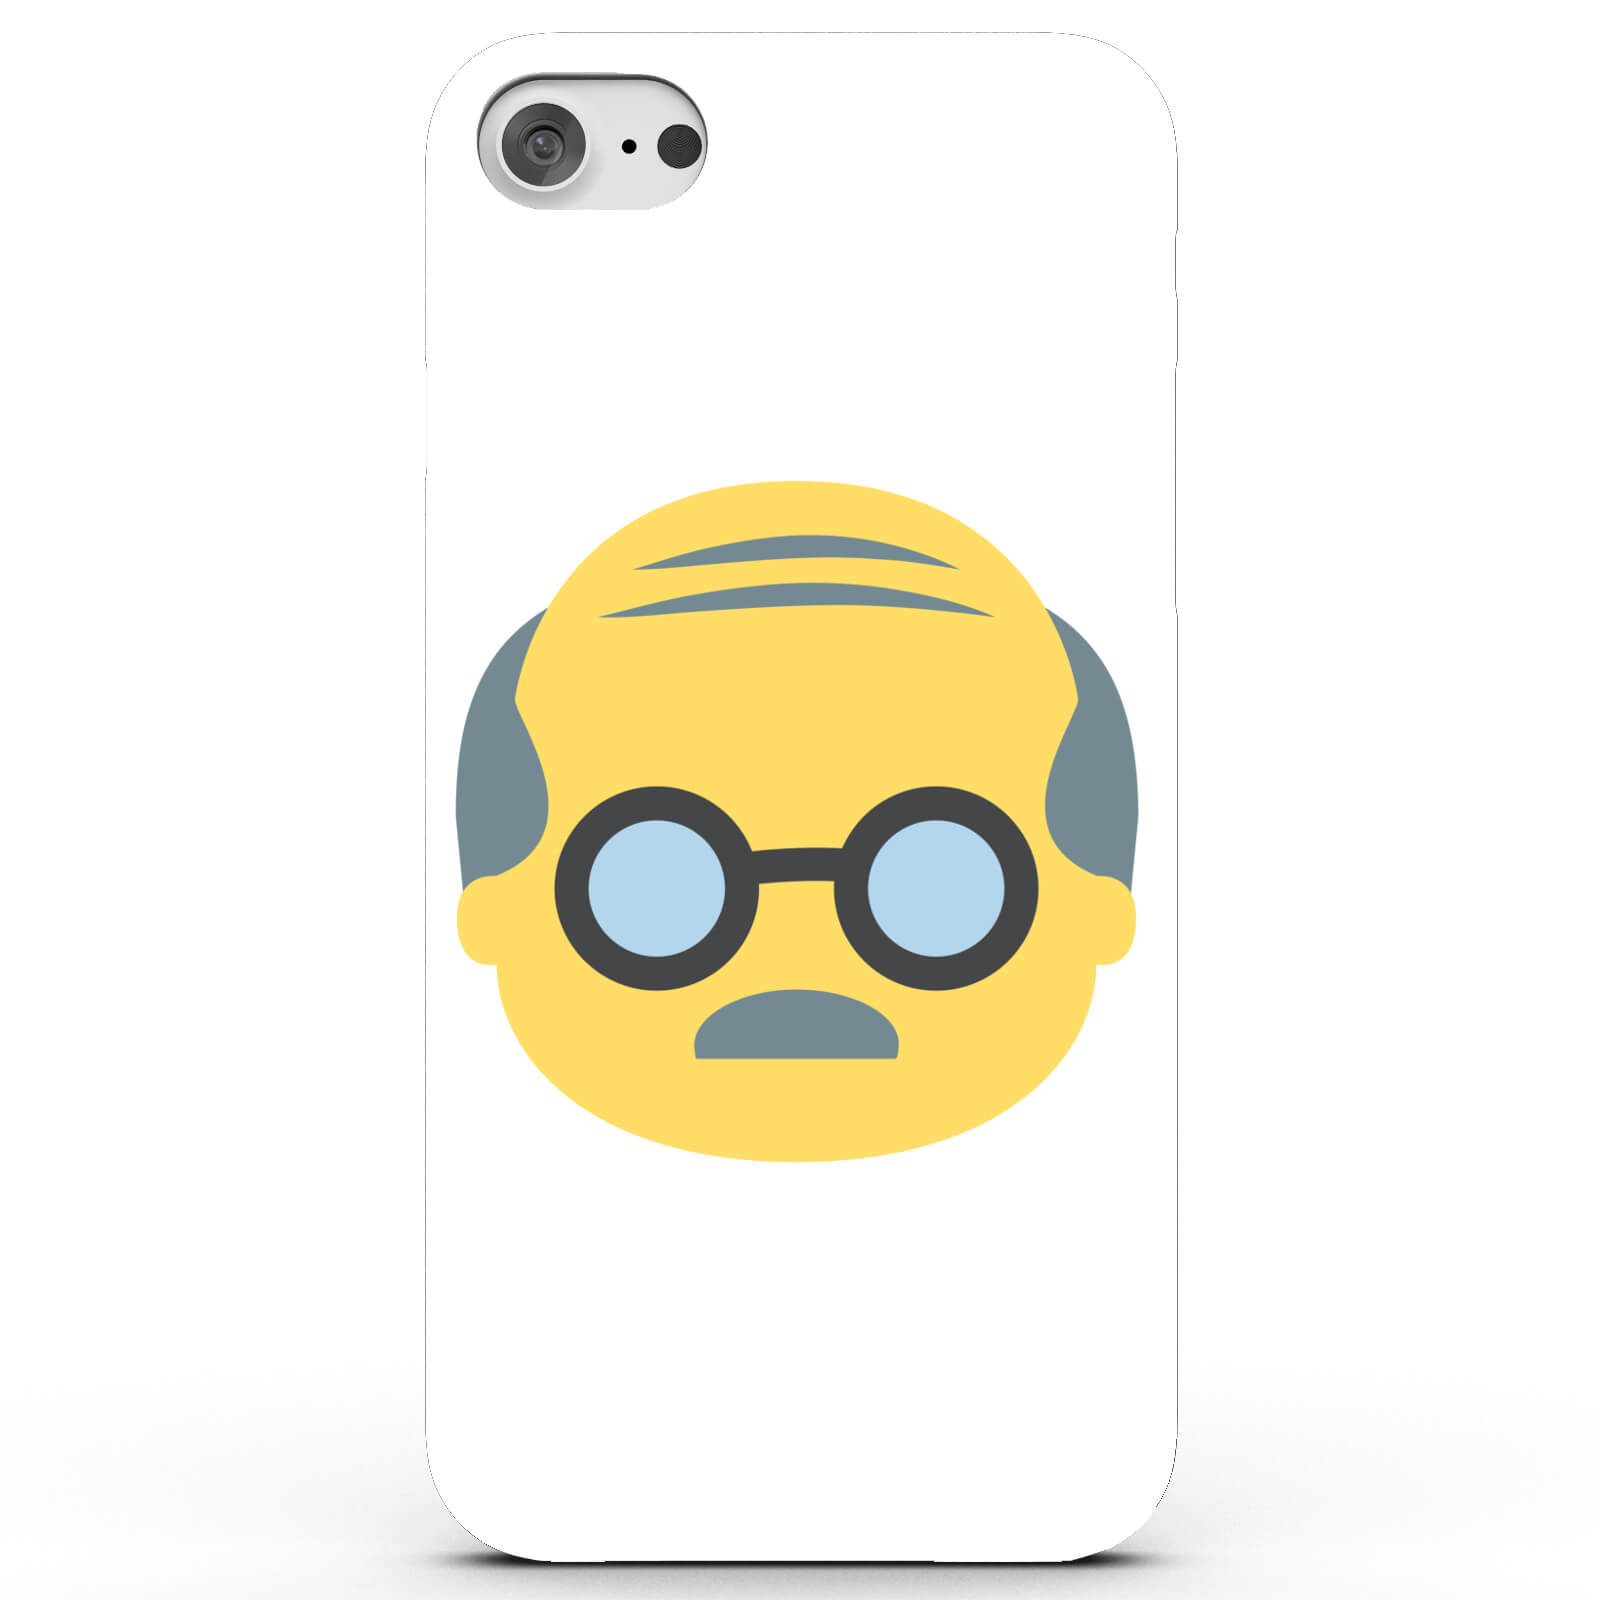 Coque iPhone & Android Emoji Papy - 4 Couleurs